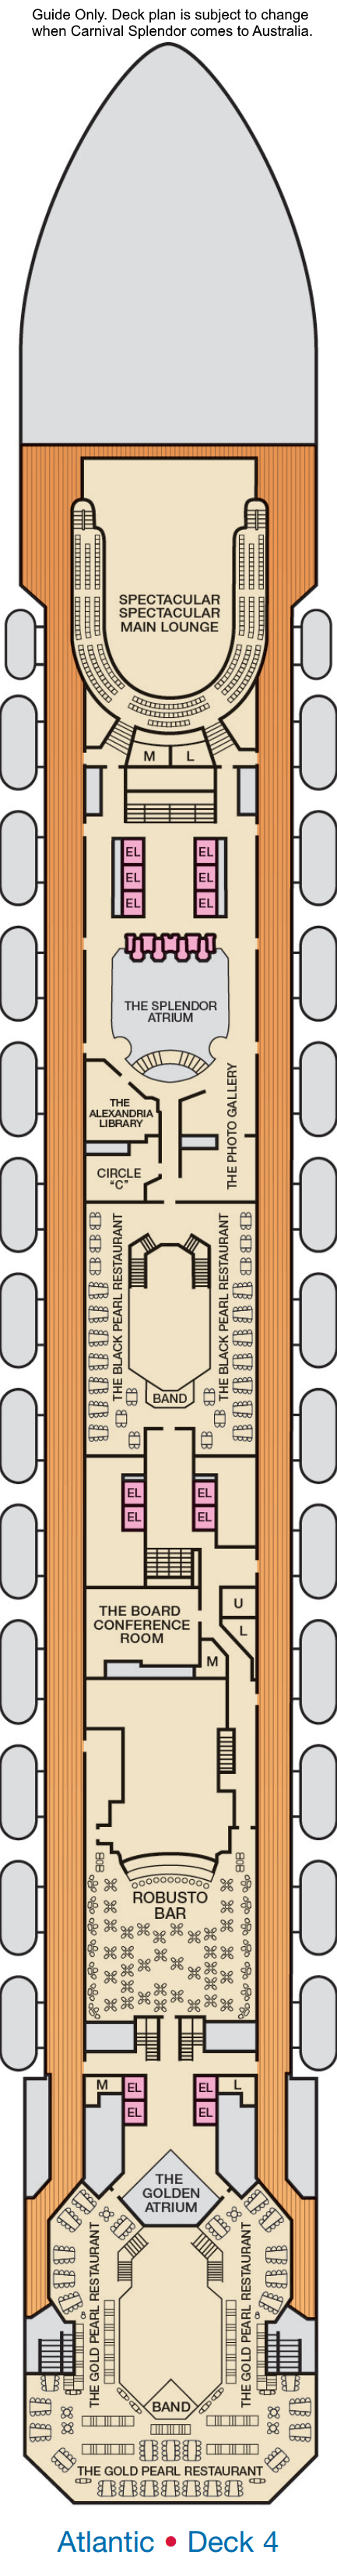 Carnival Splendor Deck 4 layout